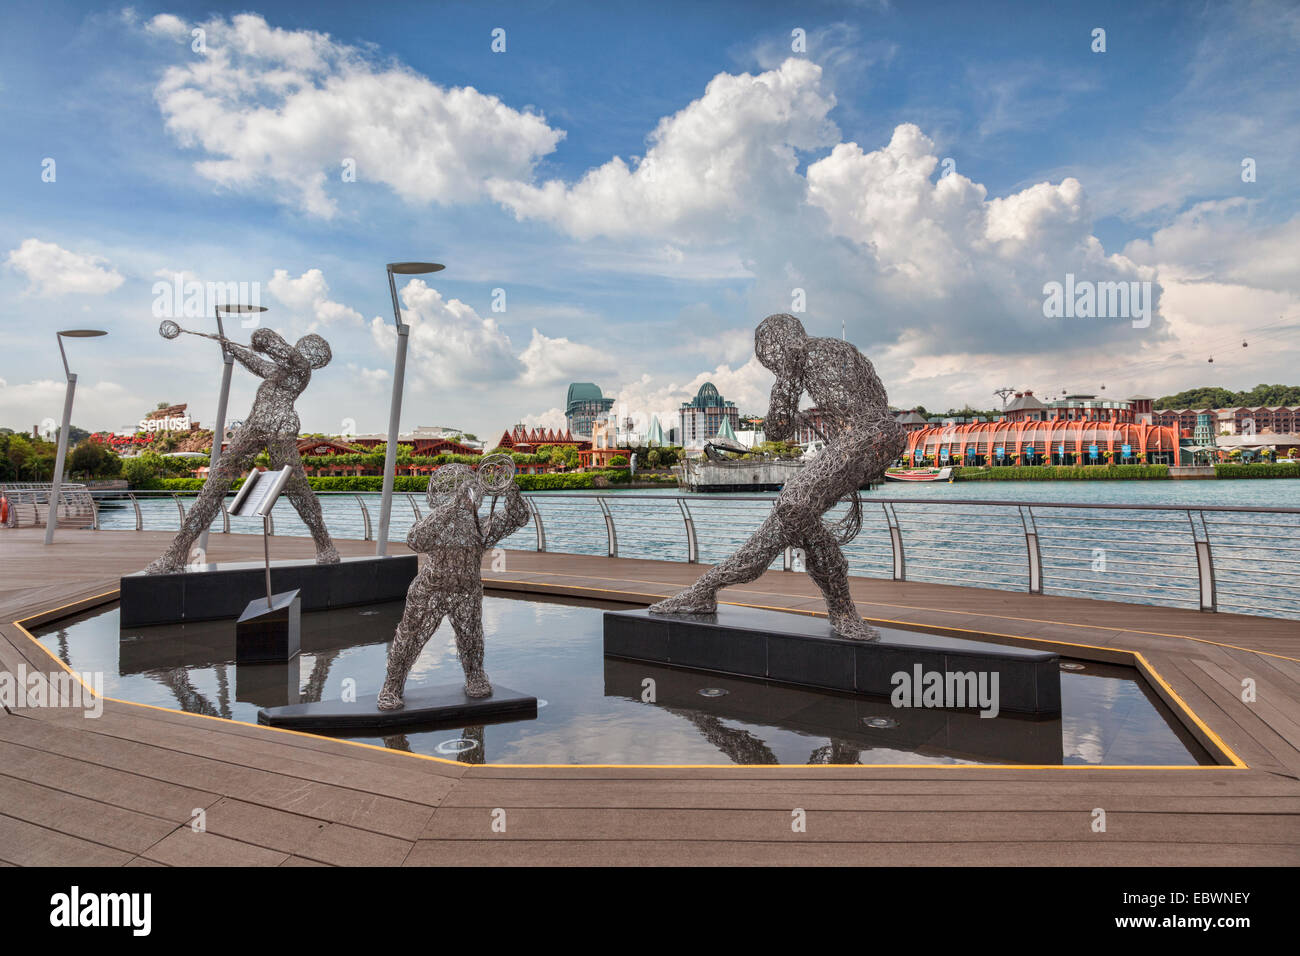 Artwork Reverie - Musical Journey by Victor Tan, on the boardwalk between Singapore Island and Sentosa Island - Stock Image